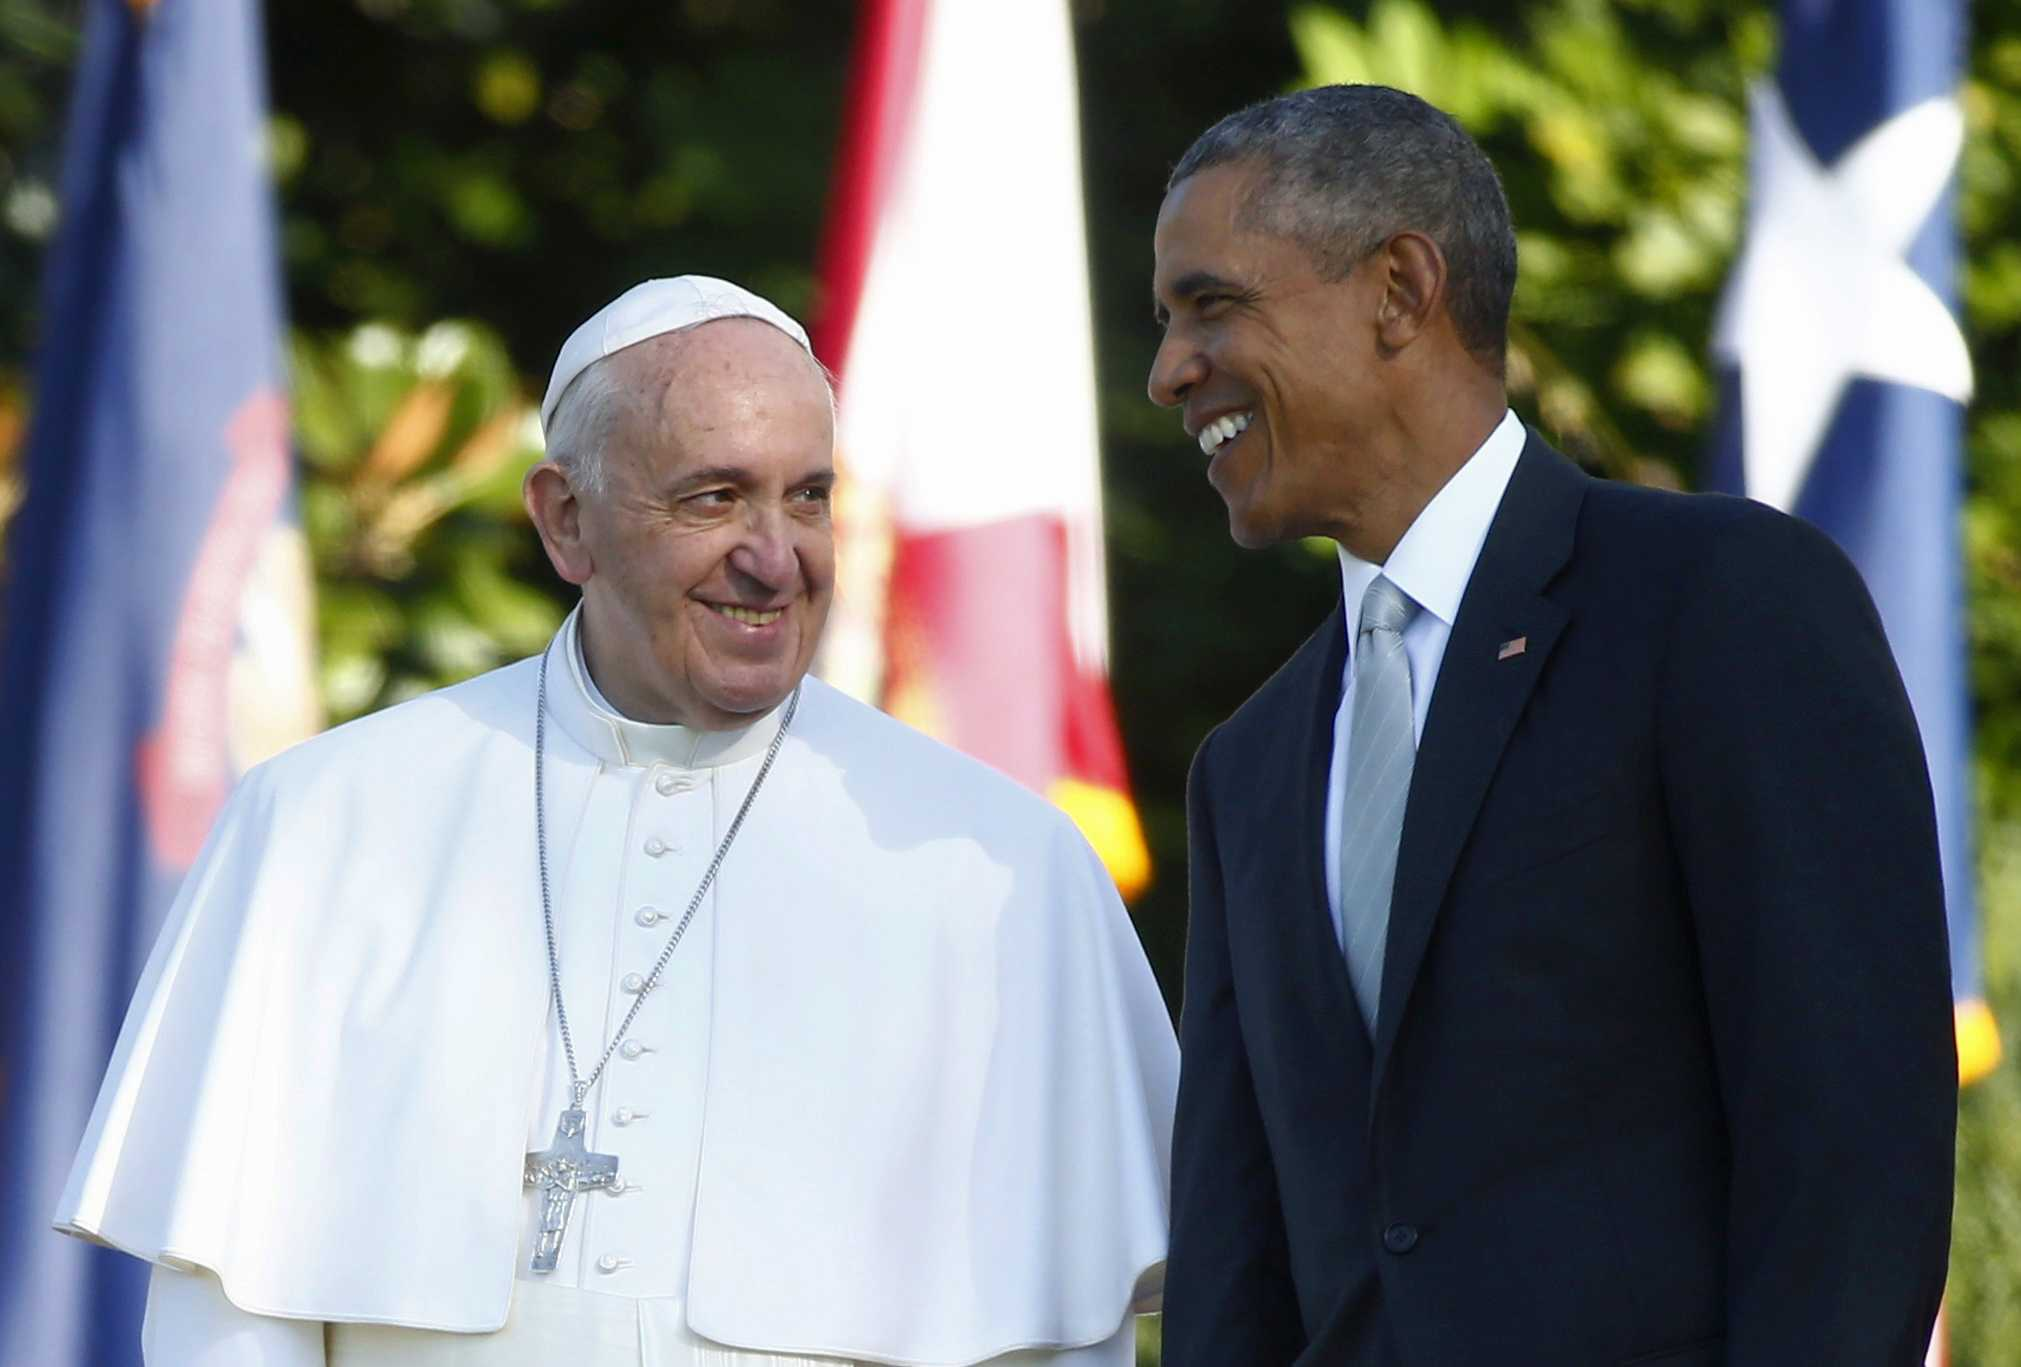 President Barack Obama talks with Pope Francis during a state arrival ceremony on the South Lawn of the White House in Washington, Wednesday, Sept. 23. The Pope will depart for Rome on Sept. 27. (Tony Gentile/Pool Photo via AP)